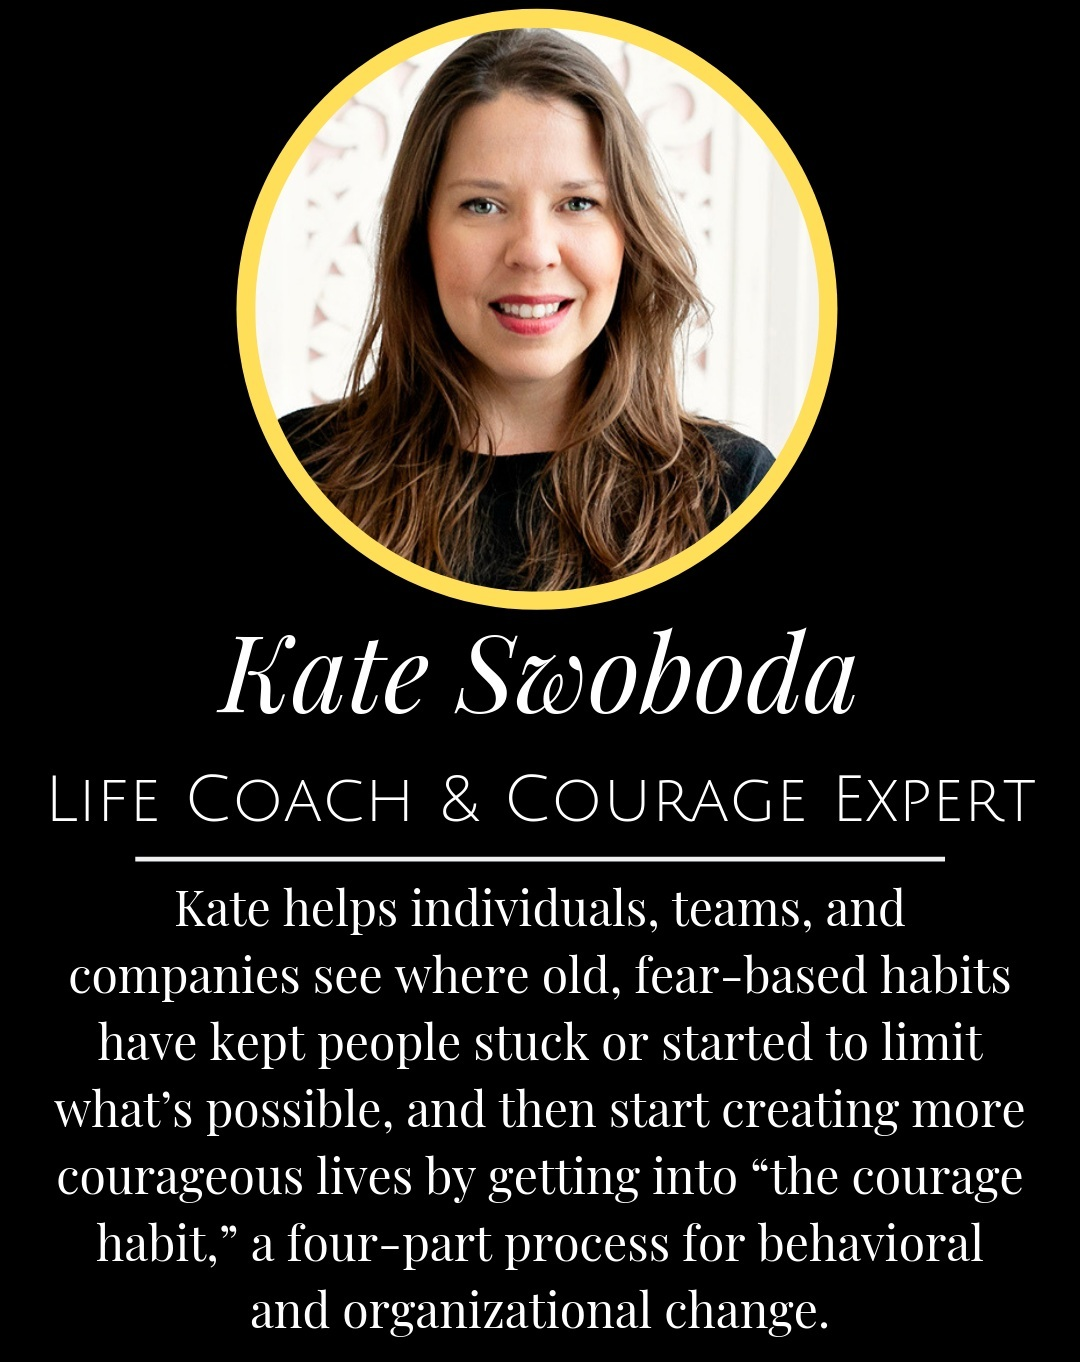 Kate Courageous - An exclusive interview with Kate Courageous where we're diving into how to transform the inner critic and cultivate courage in our everyday lives.Kate is a life coach and expert on how to make courage into a lifelong habit. She's also the Director of the Courageous Living Coach Certification and author of The Courage Habit, and creator of the Courageous Living Program.yourcourageouslife.com | instagram